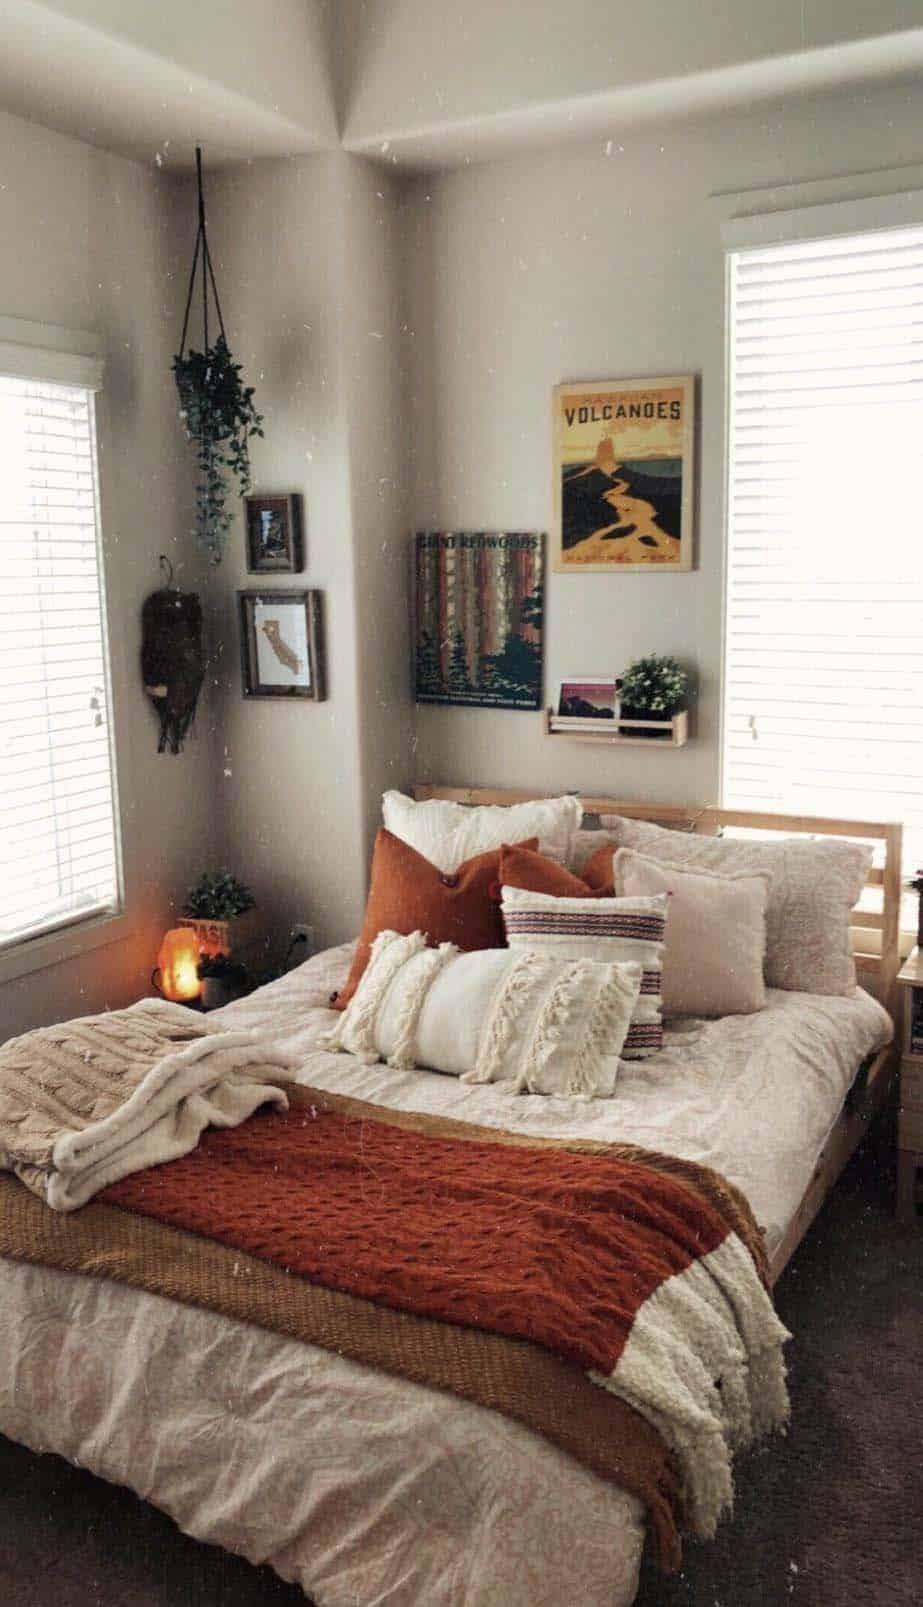 Bedroom-Decorating-Ideas-For-Autumn-13-1-Kindesign